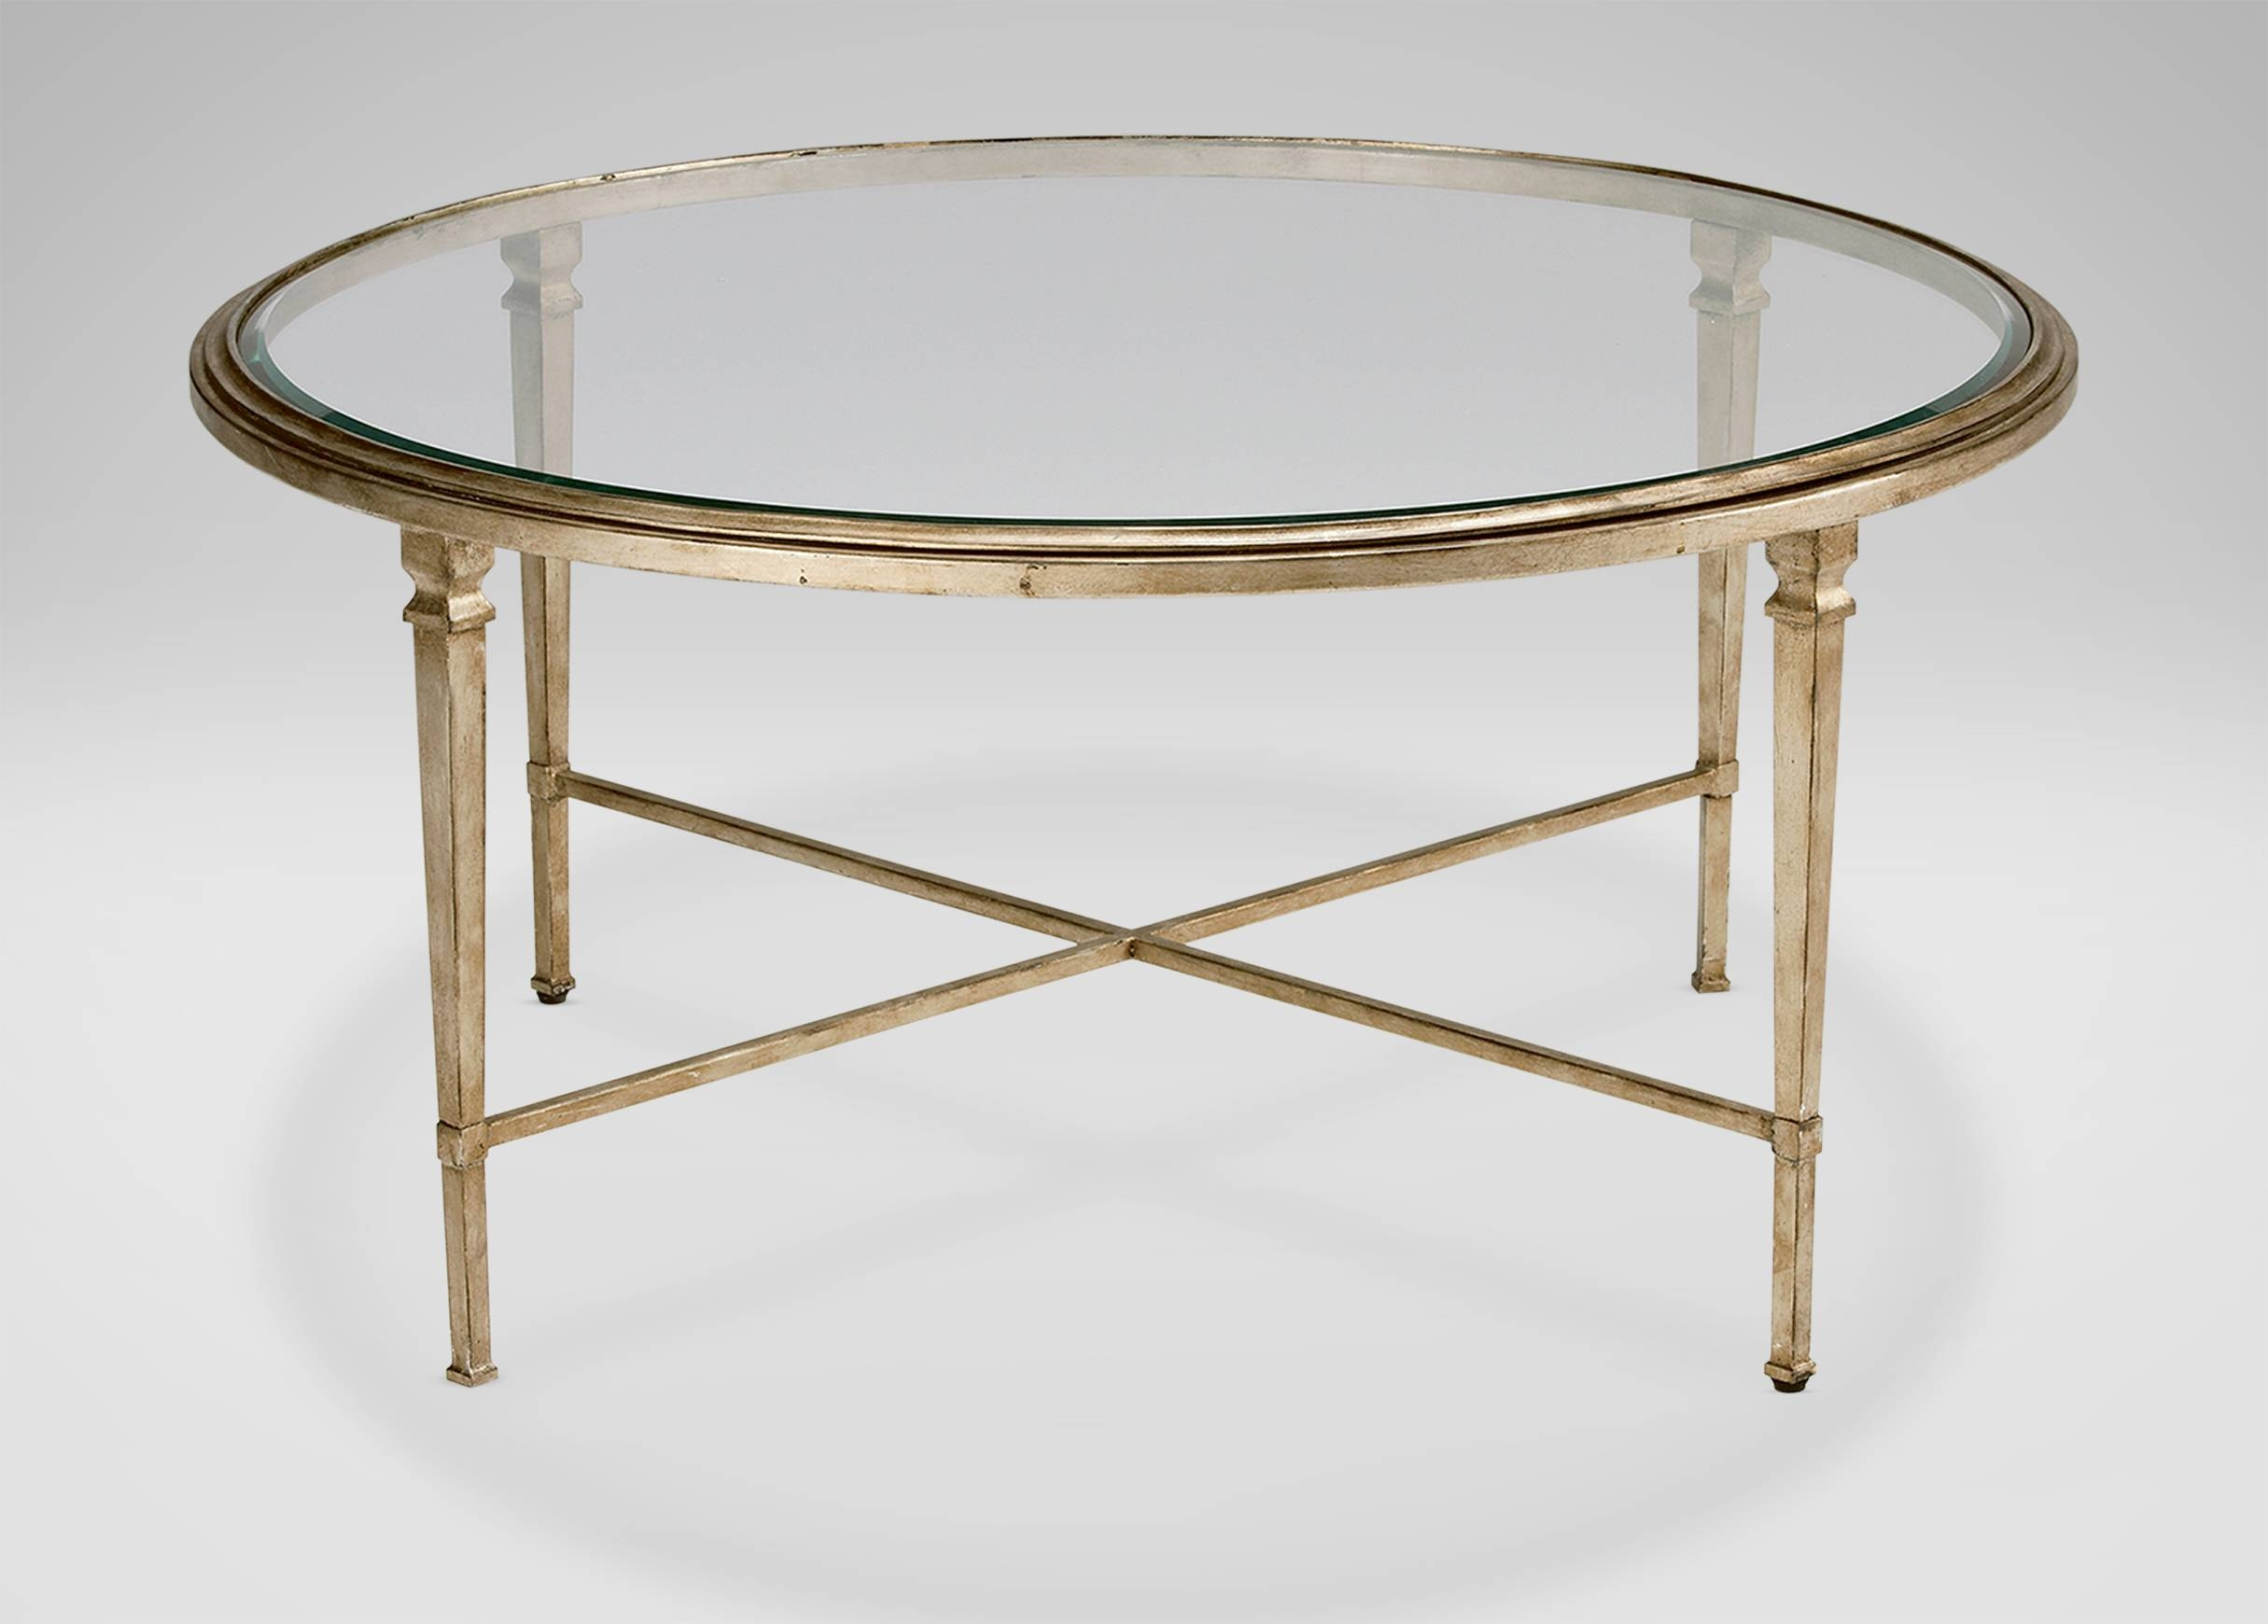 Heron Round Coffee Table | Coffee Tables Within Clock Coffee Tables Round Shaped (View 20 of 30)